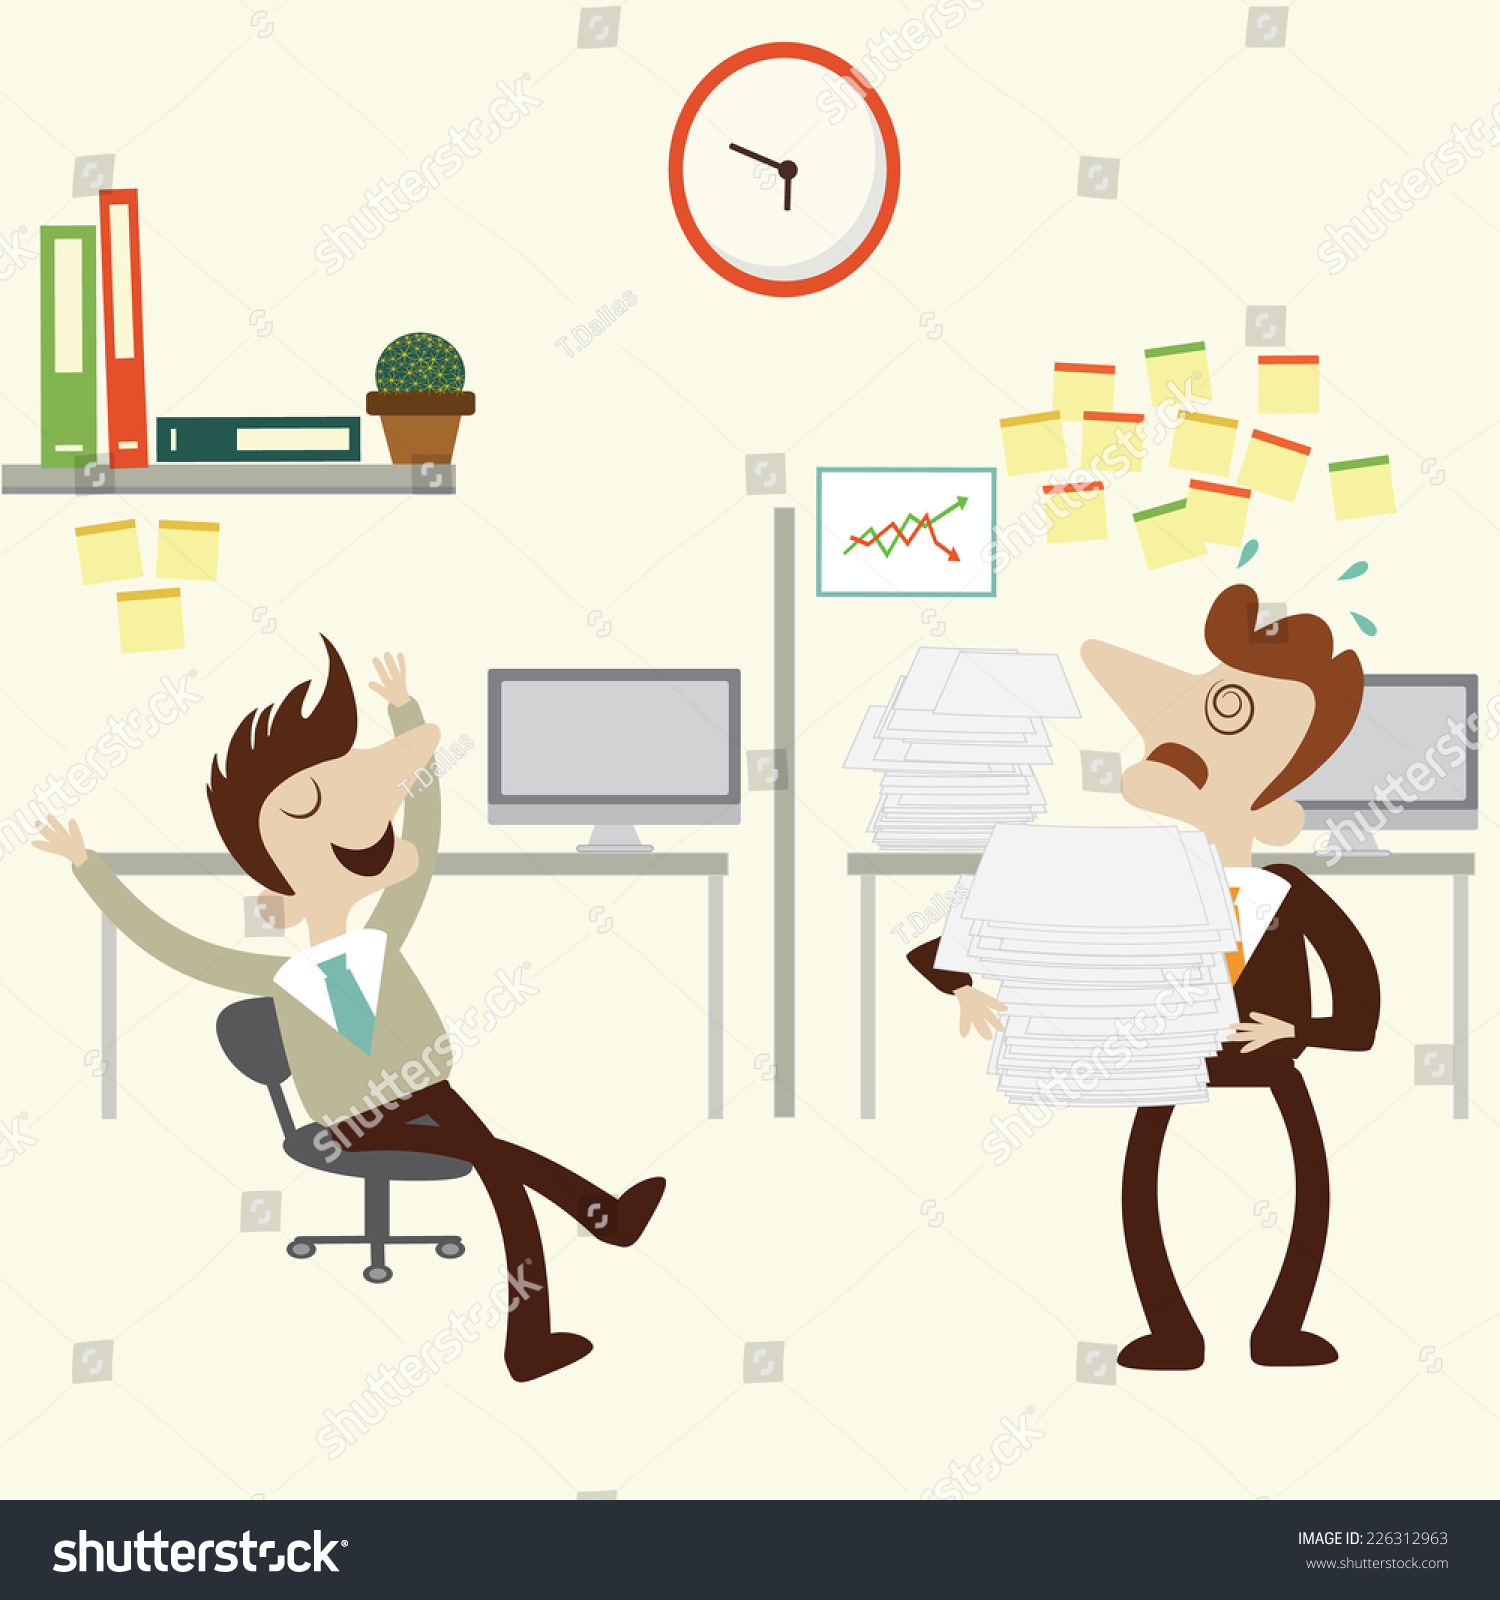 Overload Business Man Pile Stack Paper Stock Vector 226312963 ...